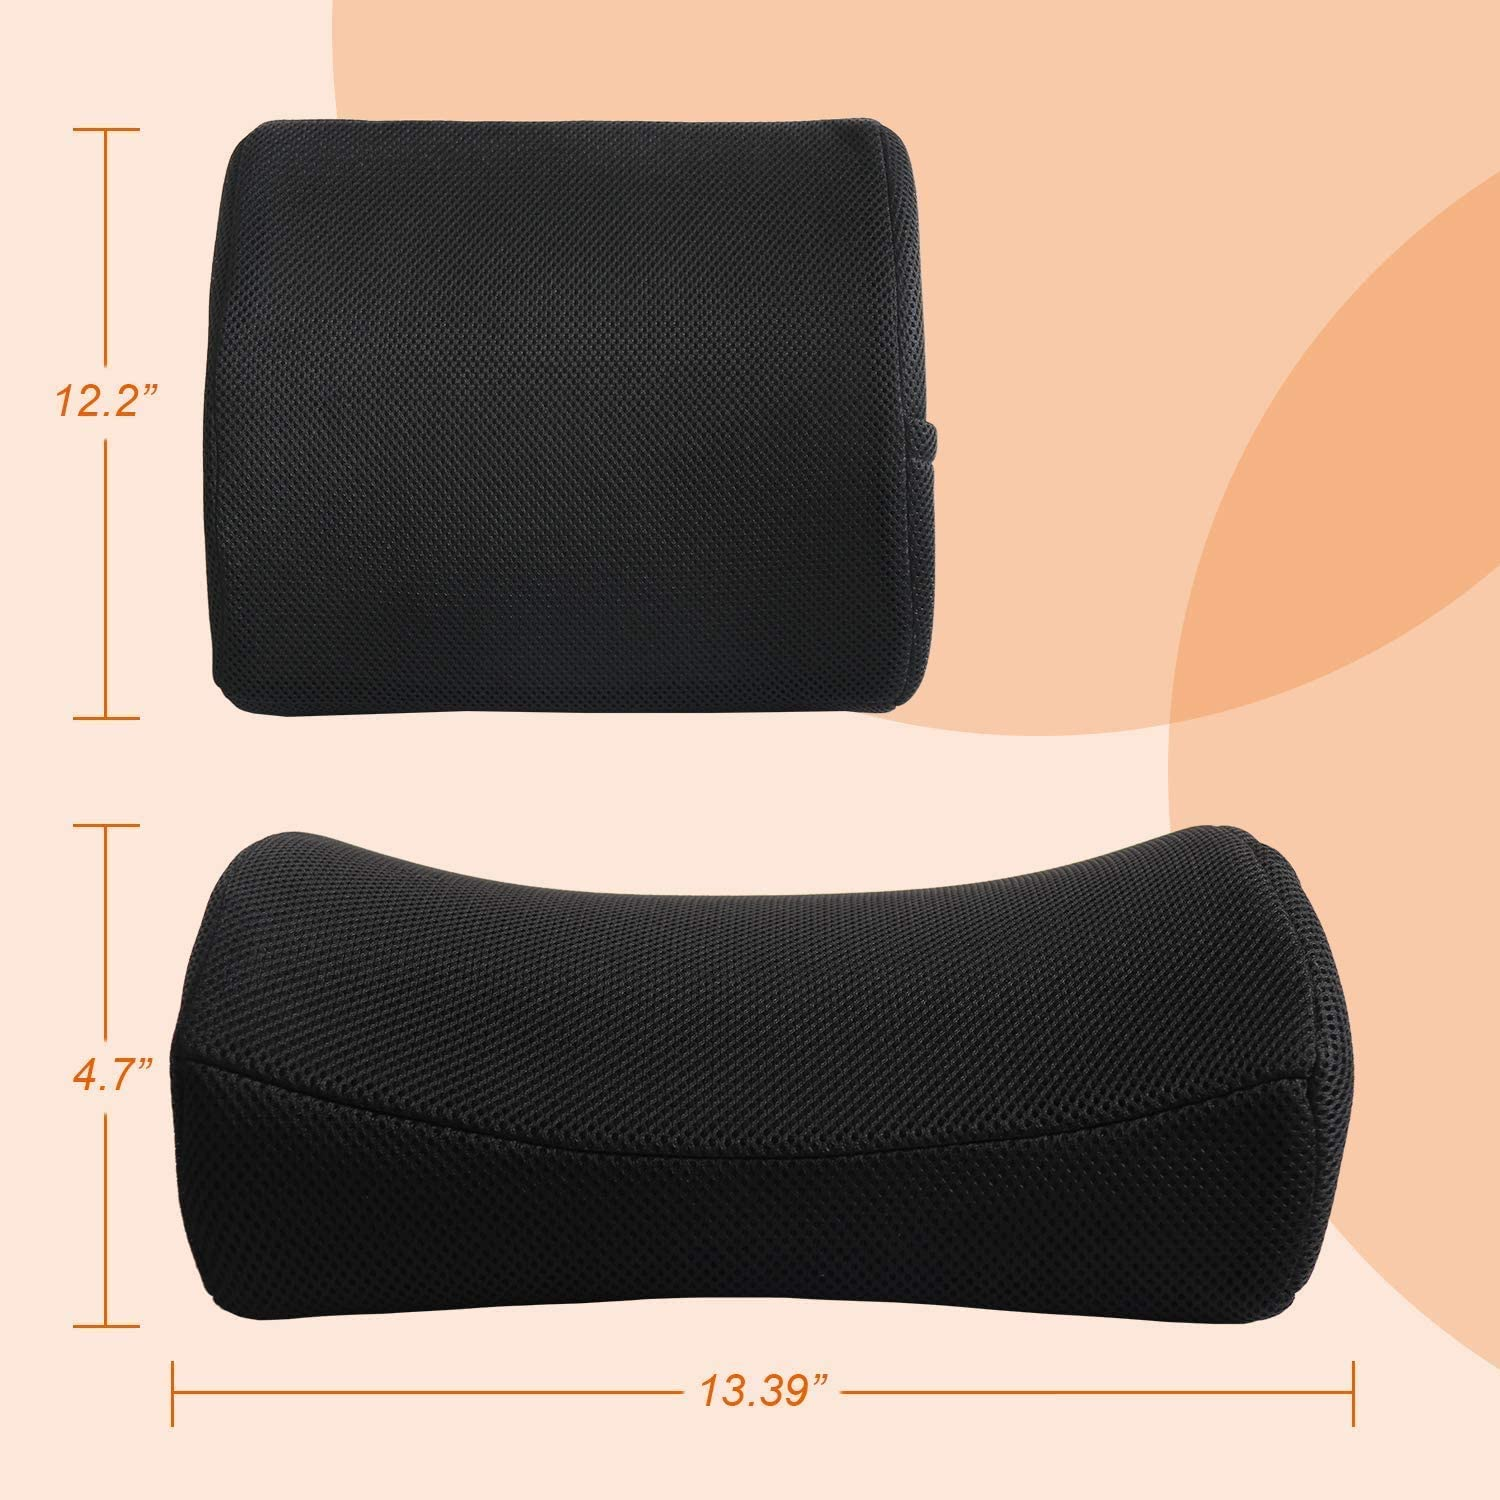 SMUGDESK Memory Foam Lumbar Support Pillow for Car Seat Office Chair Recliner with Breathable Mesh Cover Back Cushion Black